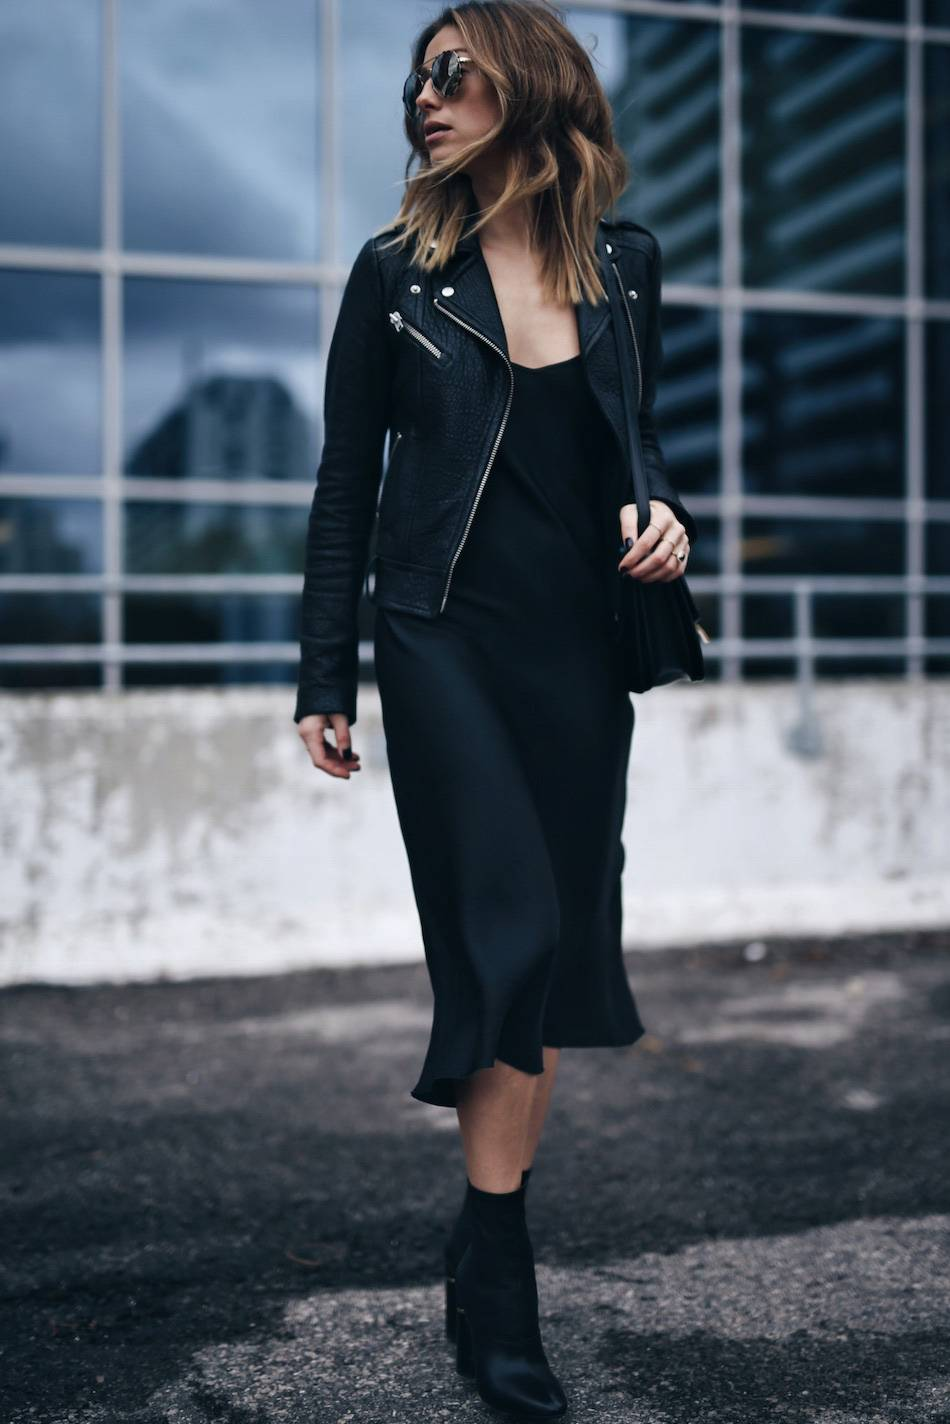 style-and-beauty-blogger-jill-lansky-of-the-august-diaries-in-a-mackage-rumer-leather-jacket-slip-dress-celine-bag-and-3-1-phillip-lim-kyoto-boots